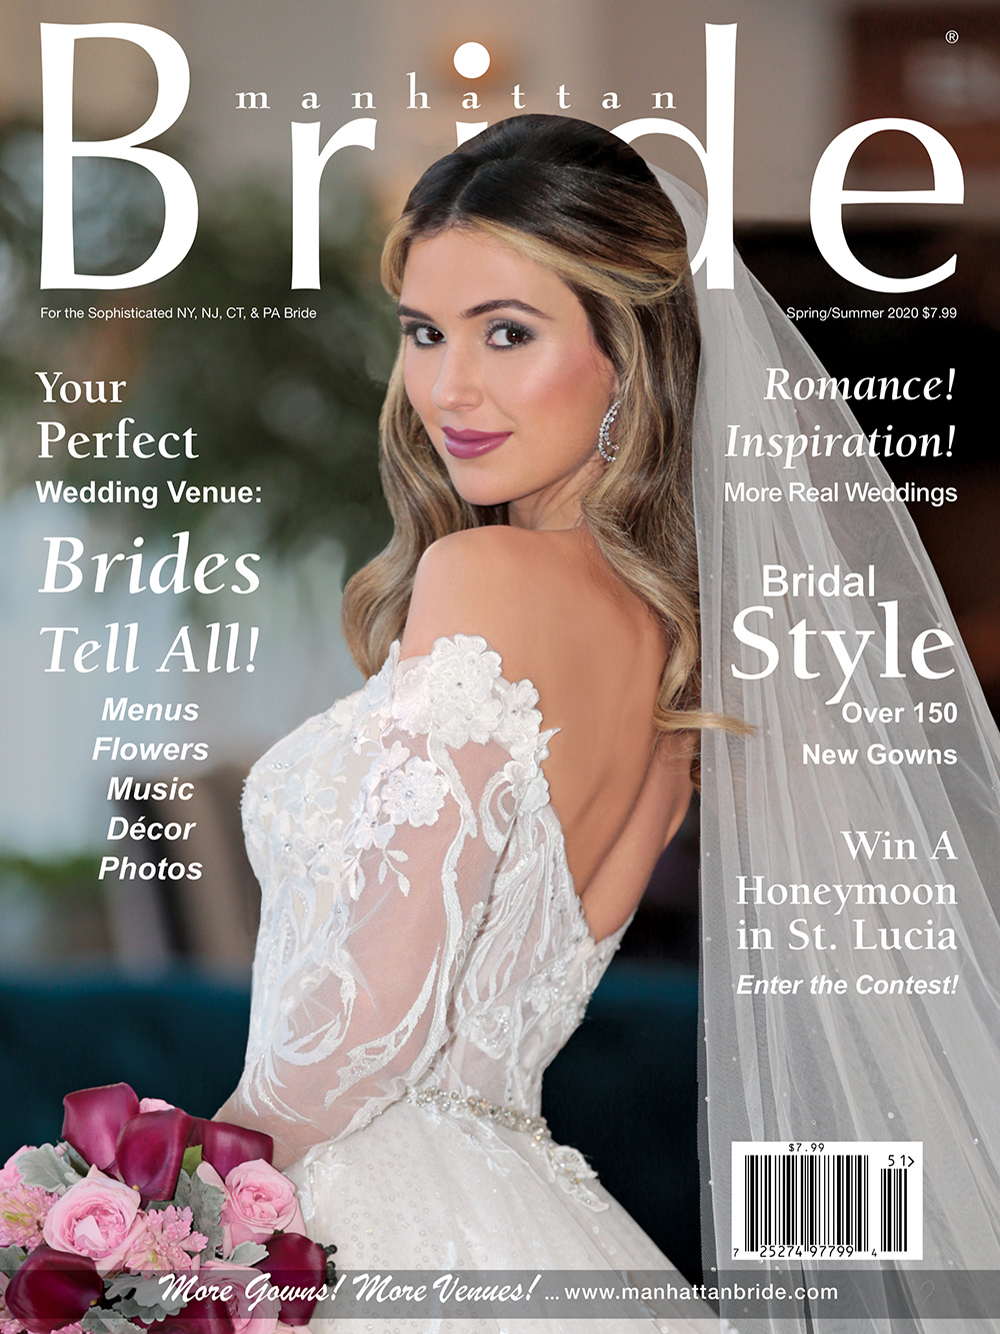 Manhattan Bride Cover Spring/Summer 2020